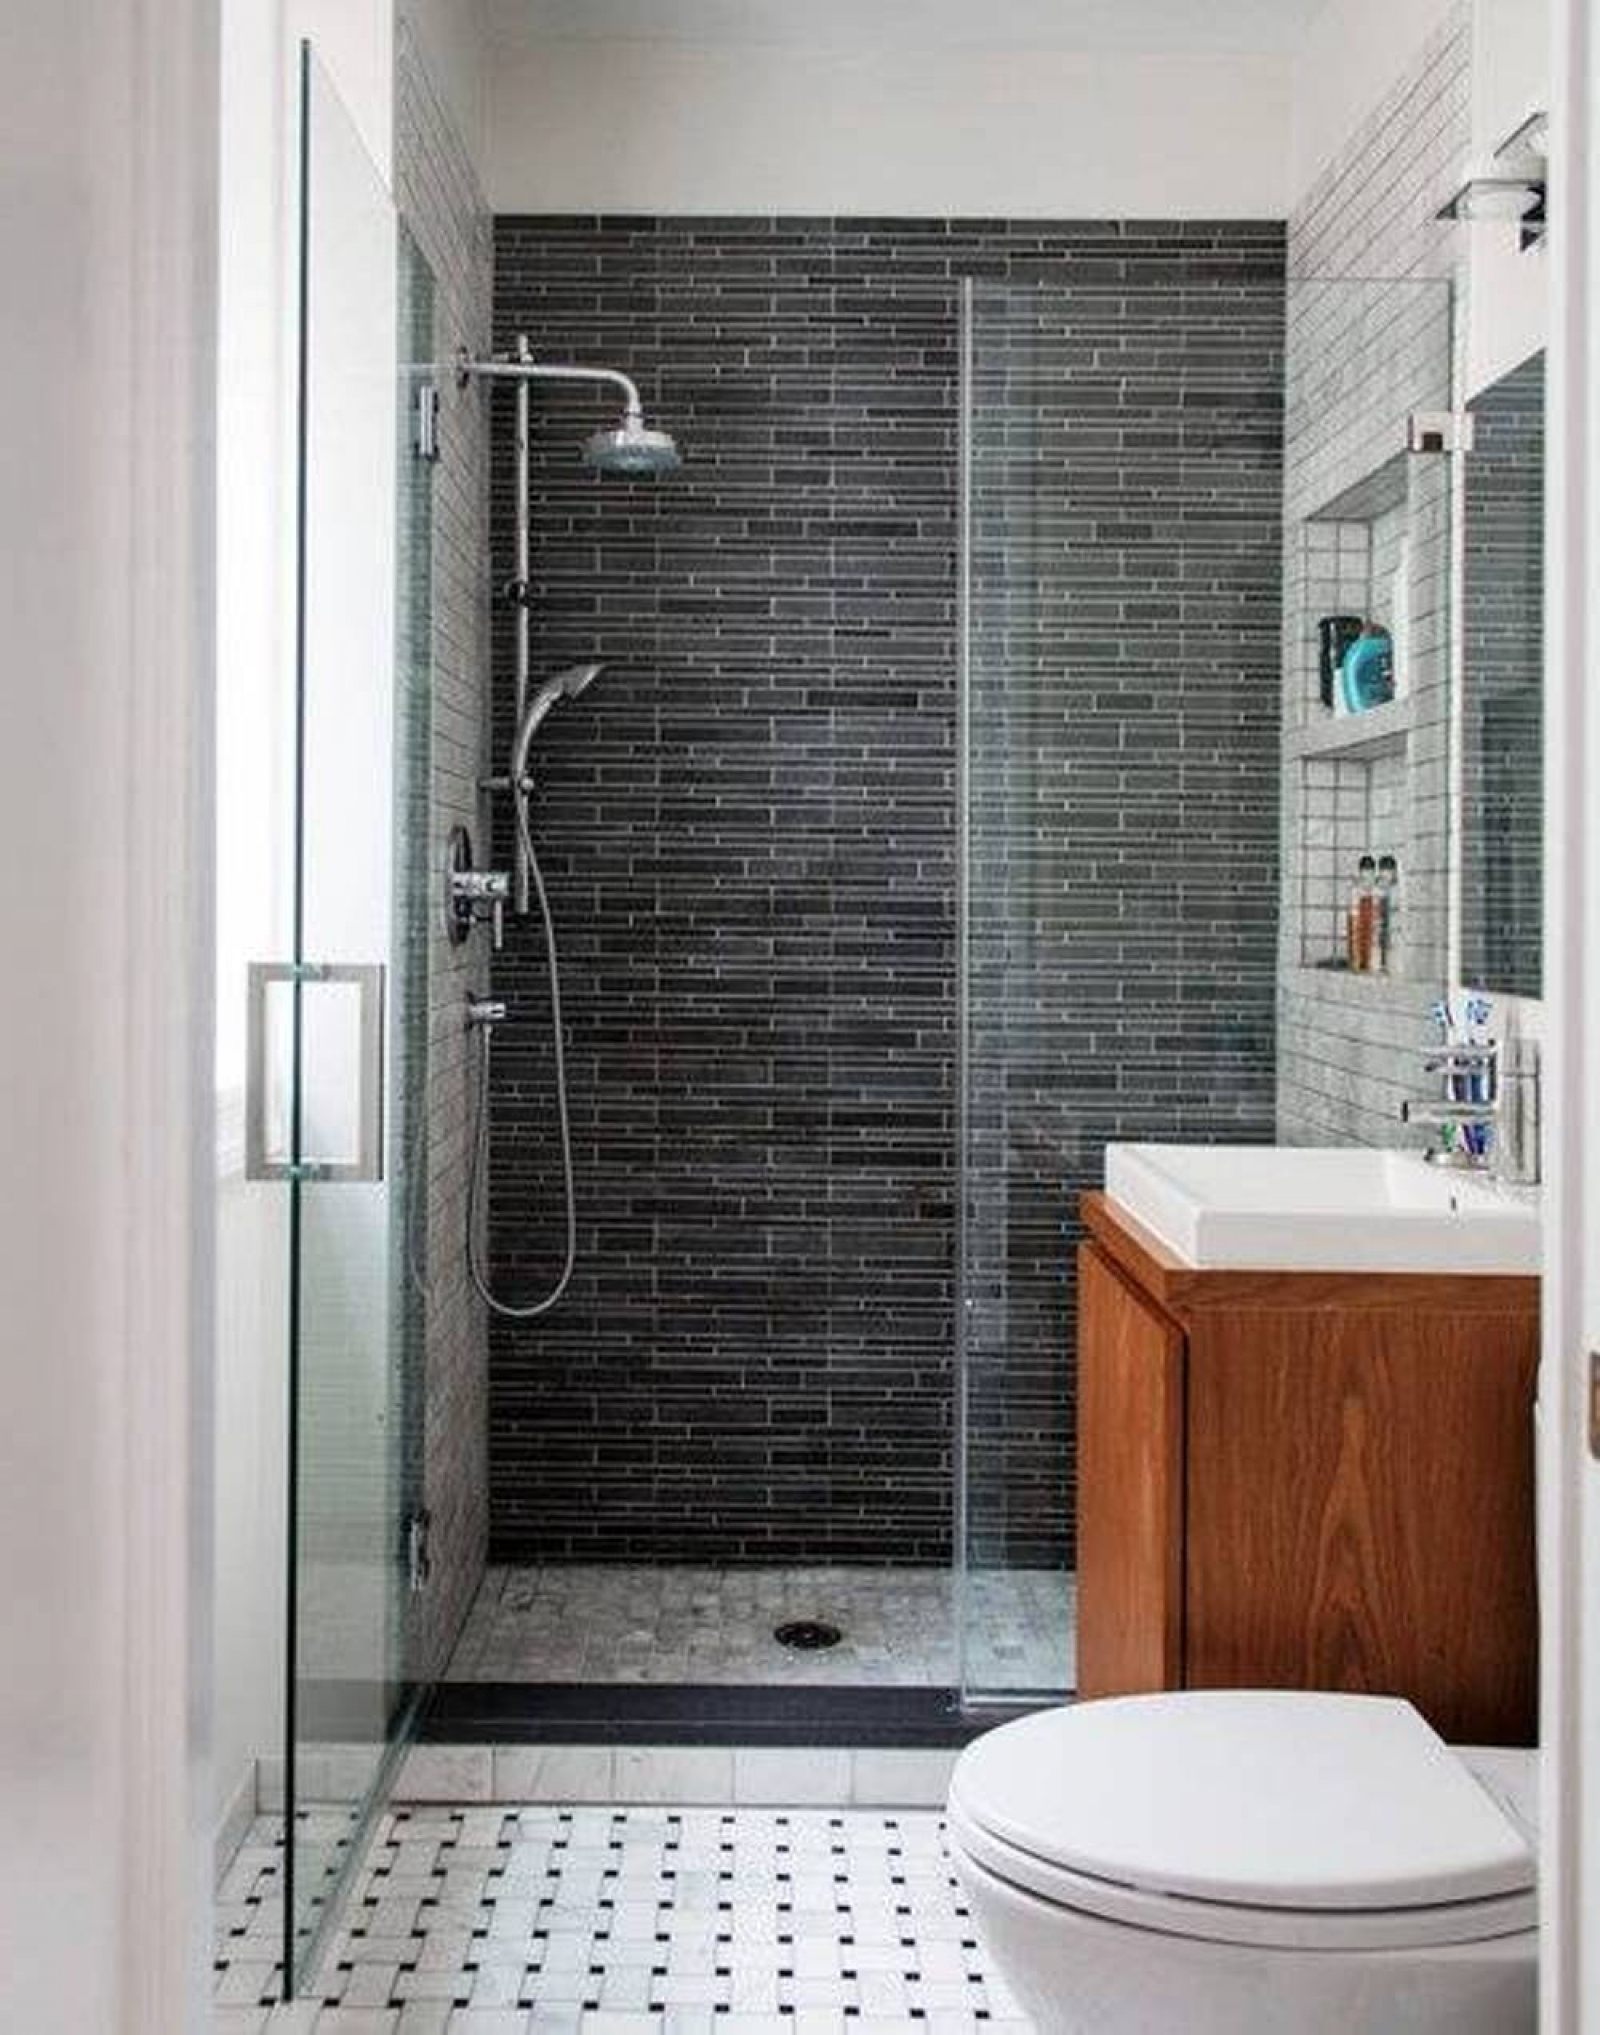 Interesting Black Shower Tiles For White Bathroom Remodel Furnished With  Wooden Vanity